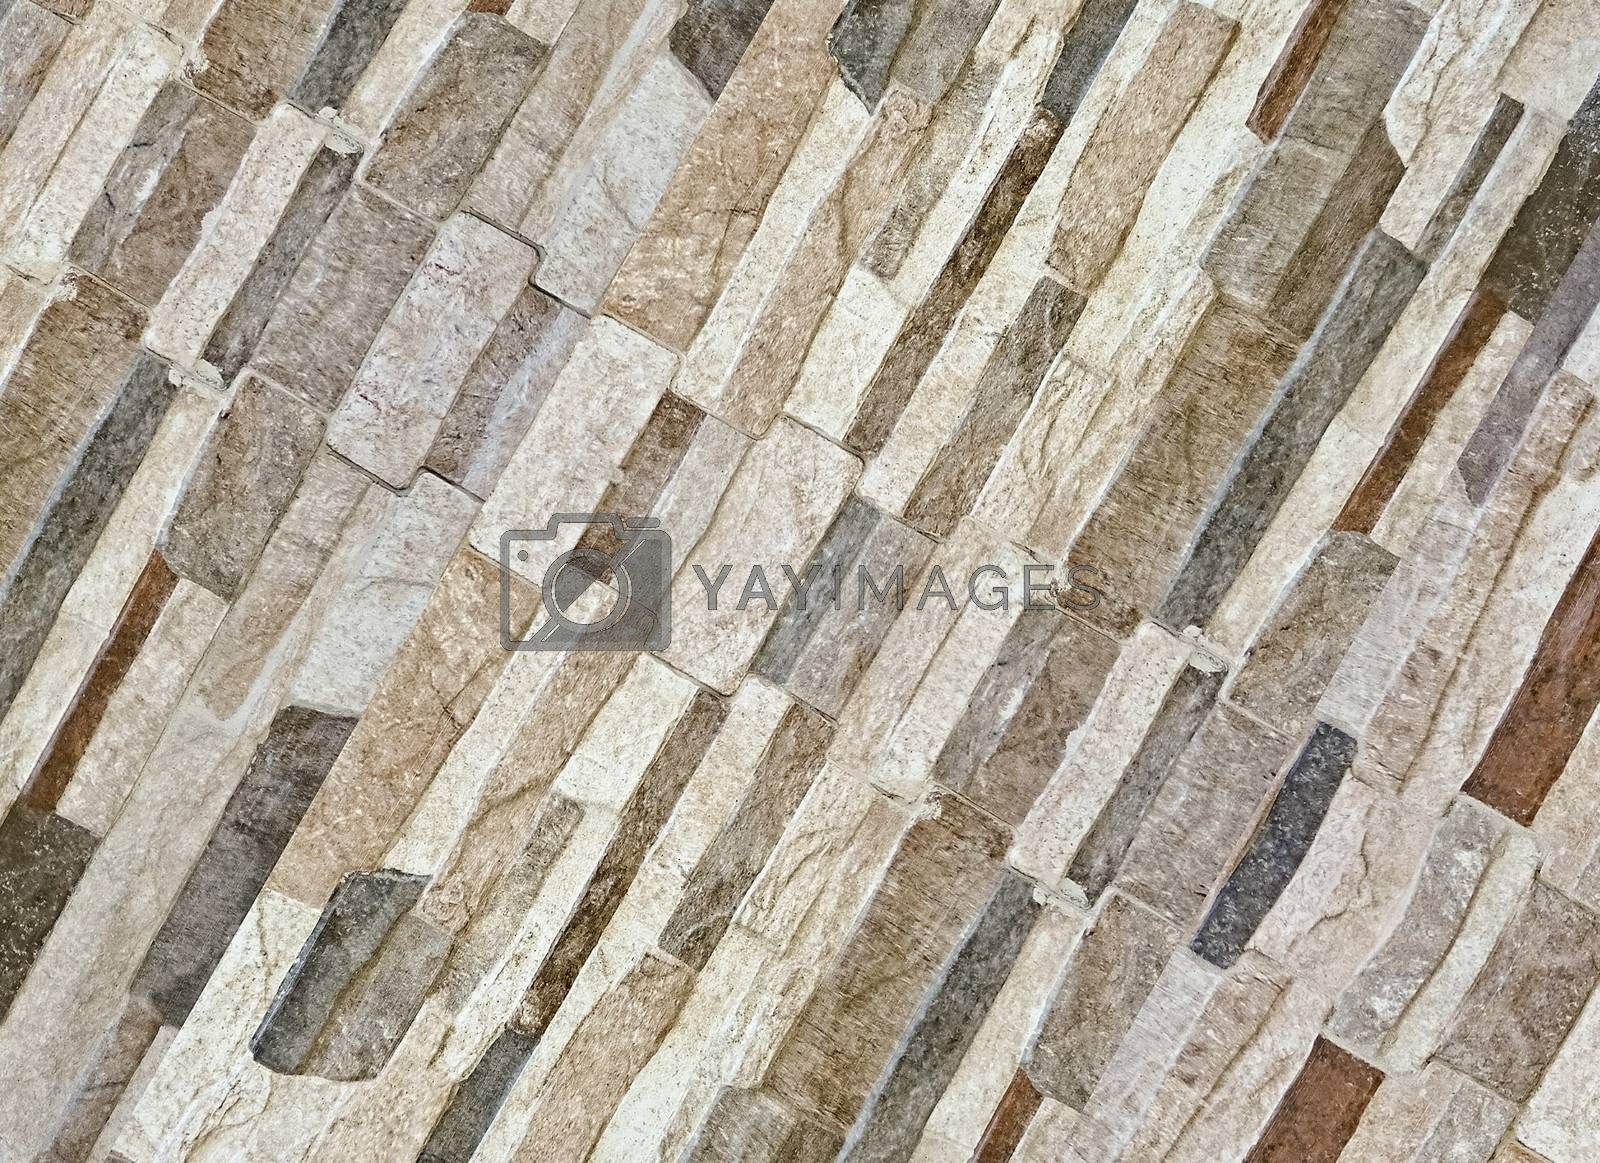 Real house stone wall pattern in multicolored scheme in diagonal composition useful as background, material texture or pattern